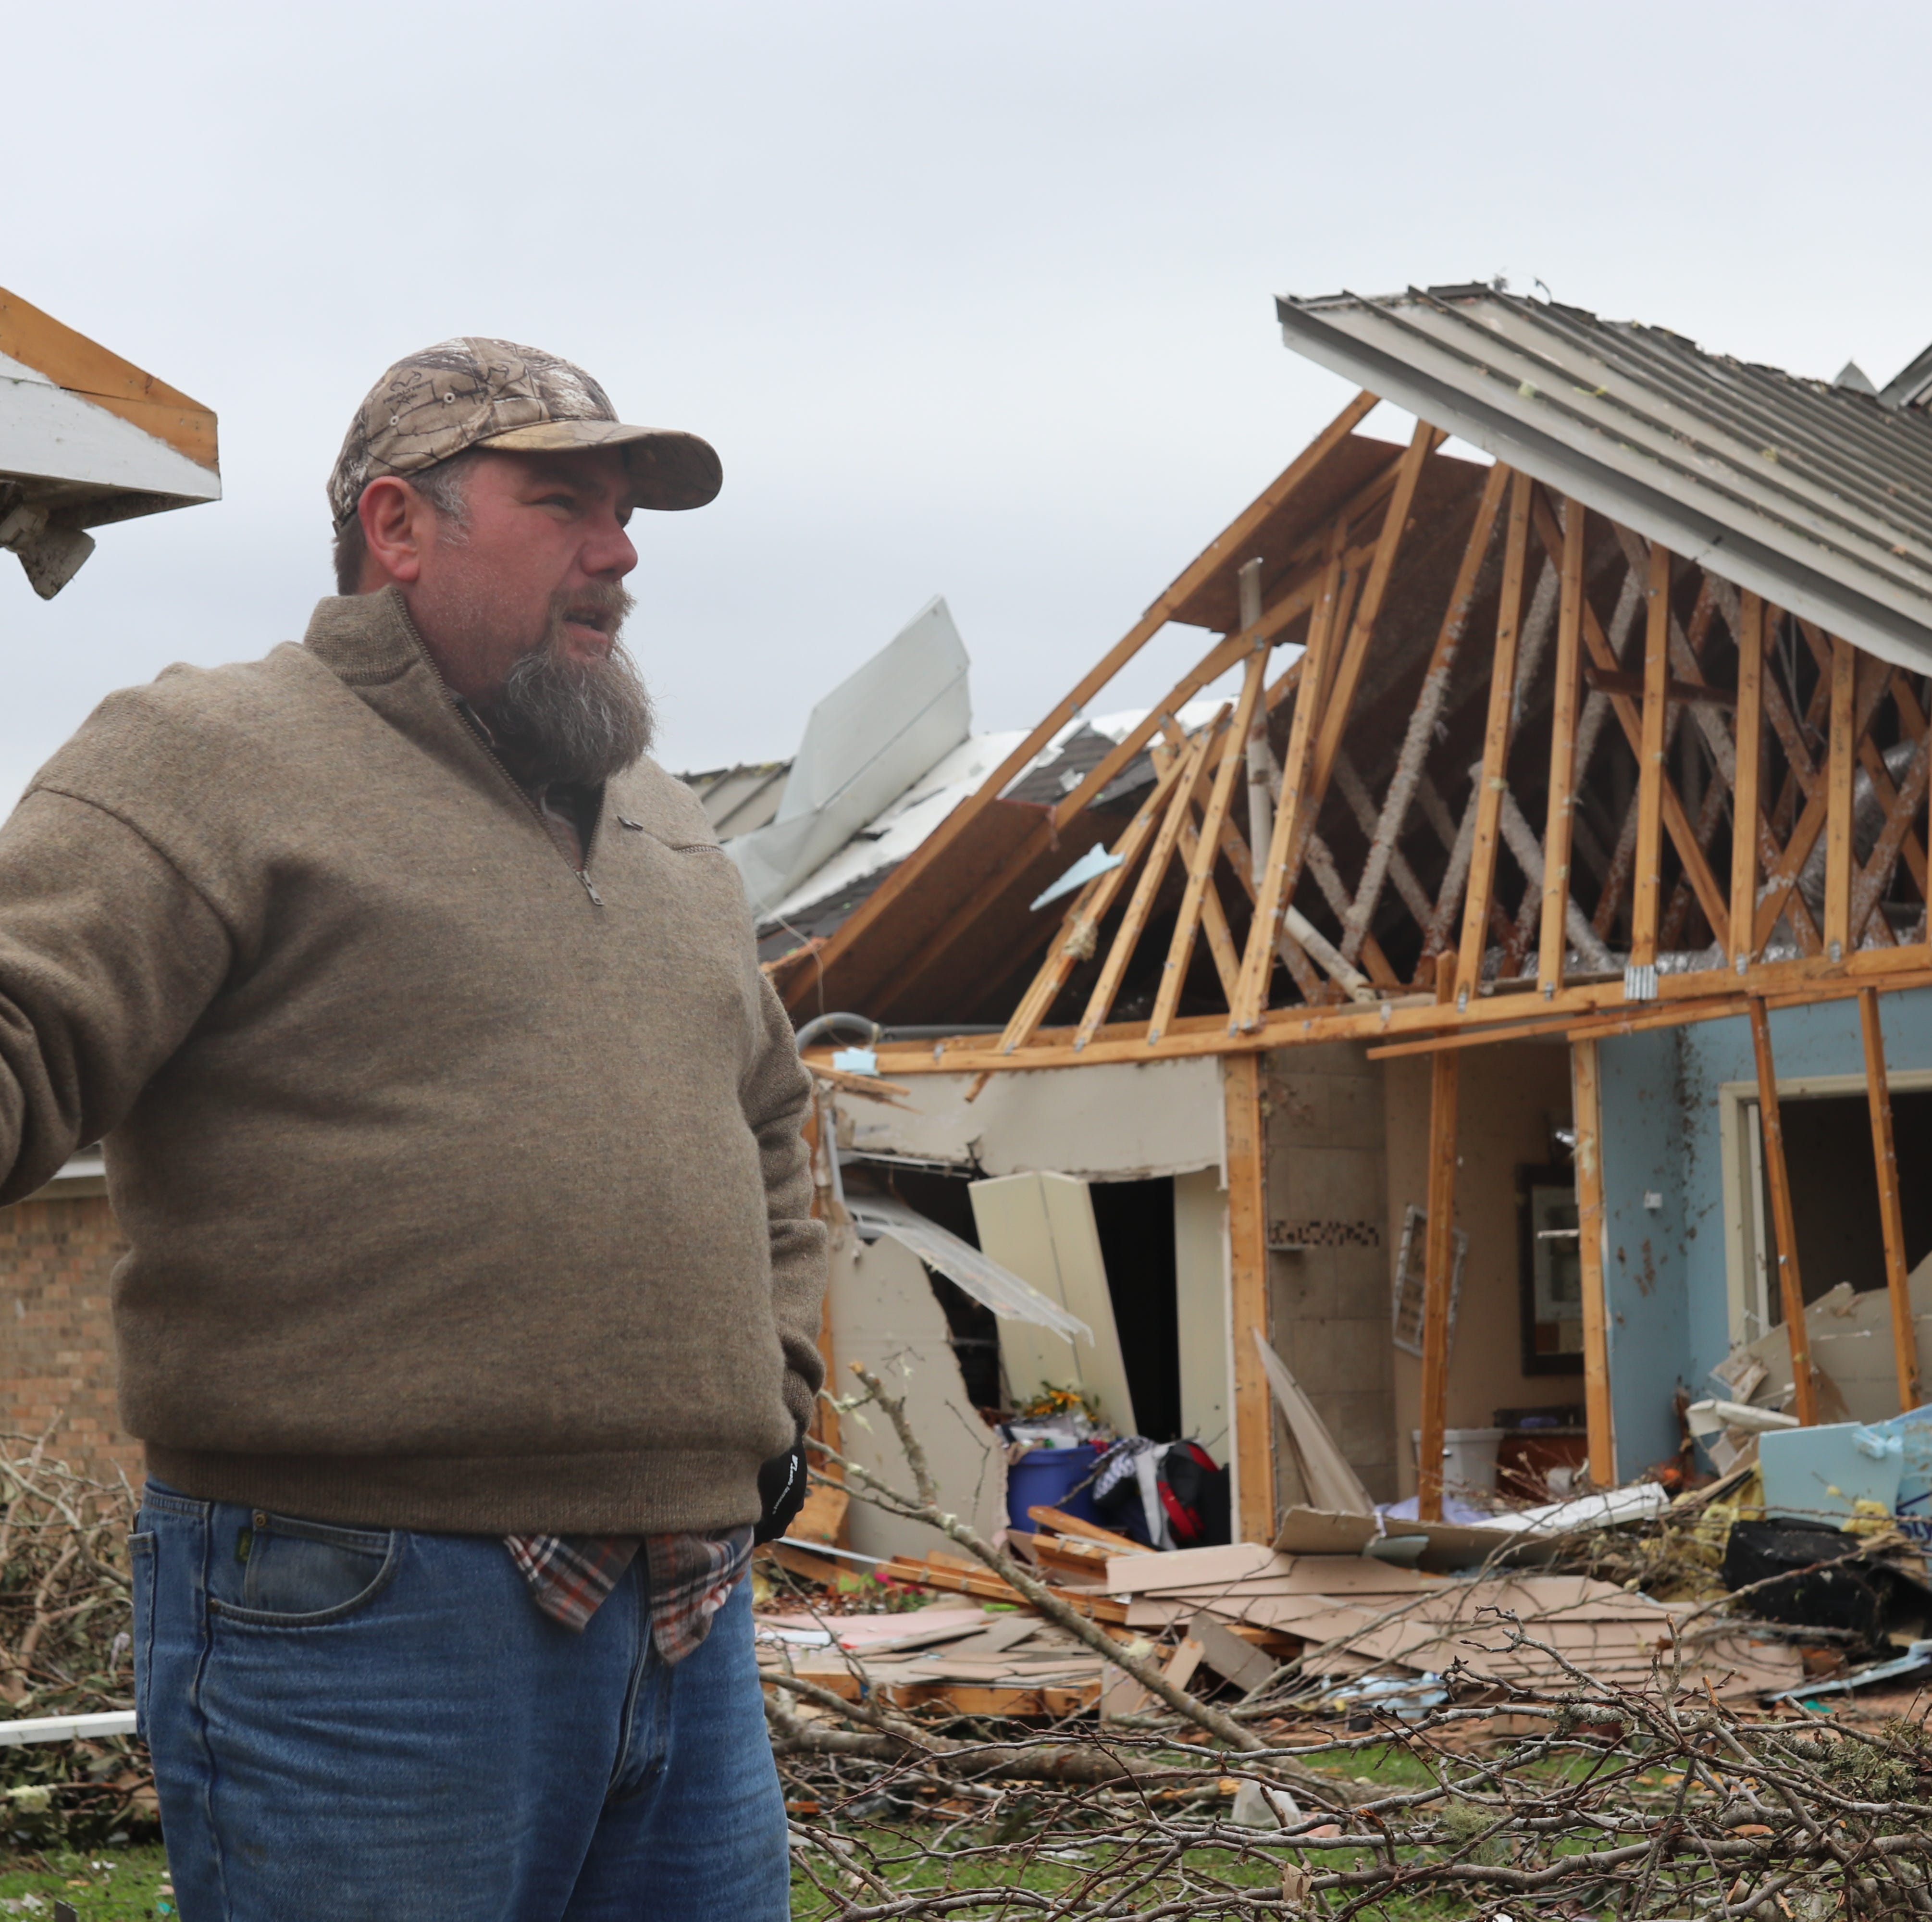 Storm that hit Leon County Baum community upgraded to powerful EF3 tornado